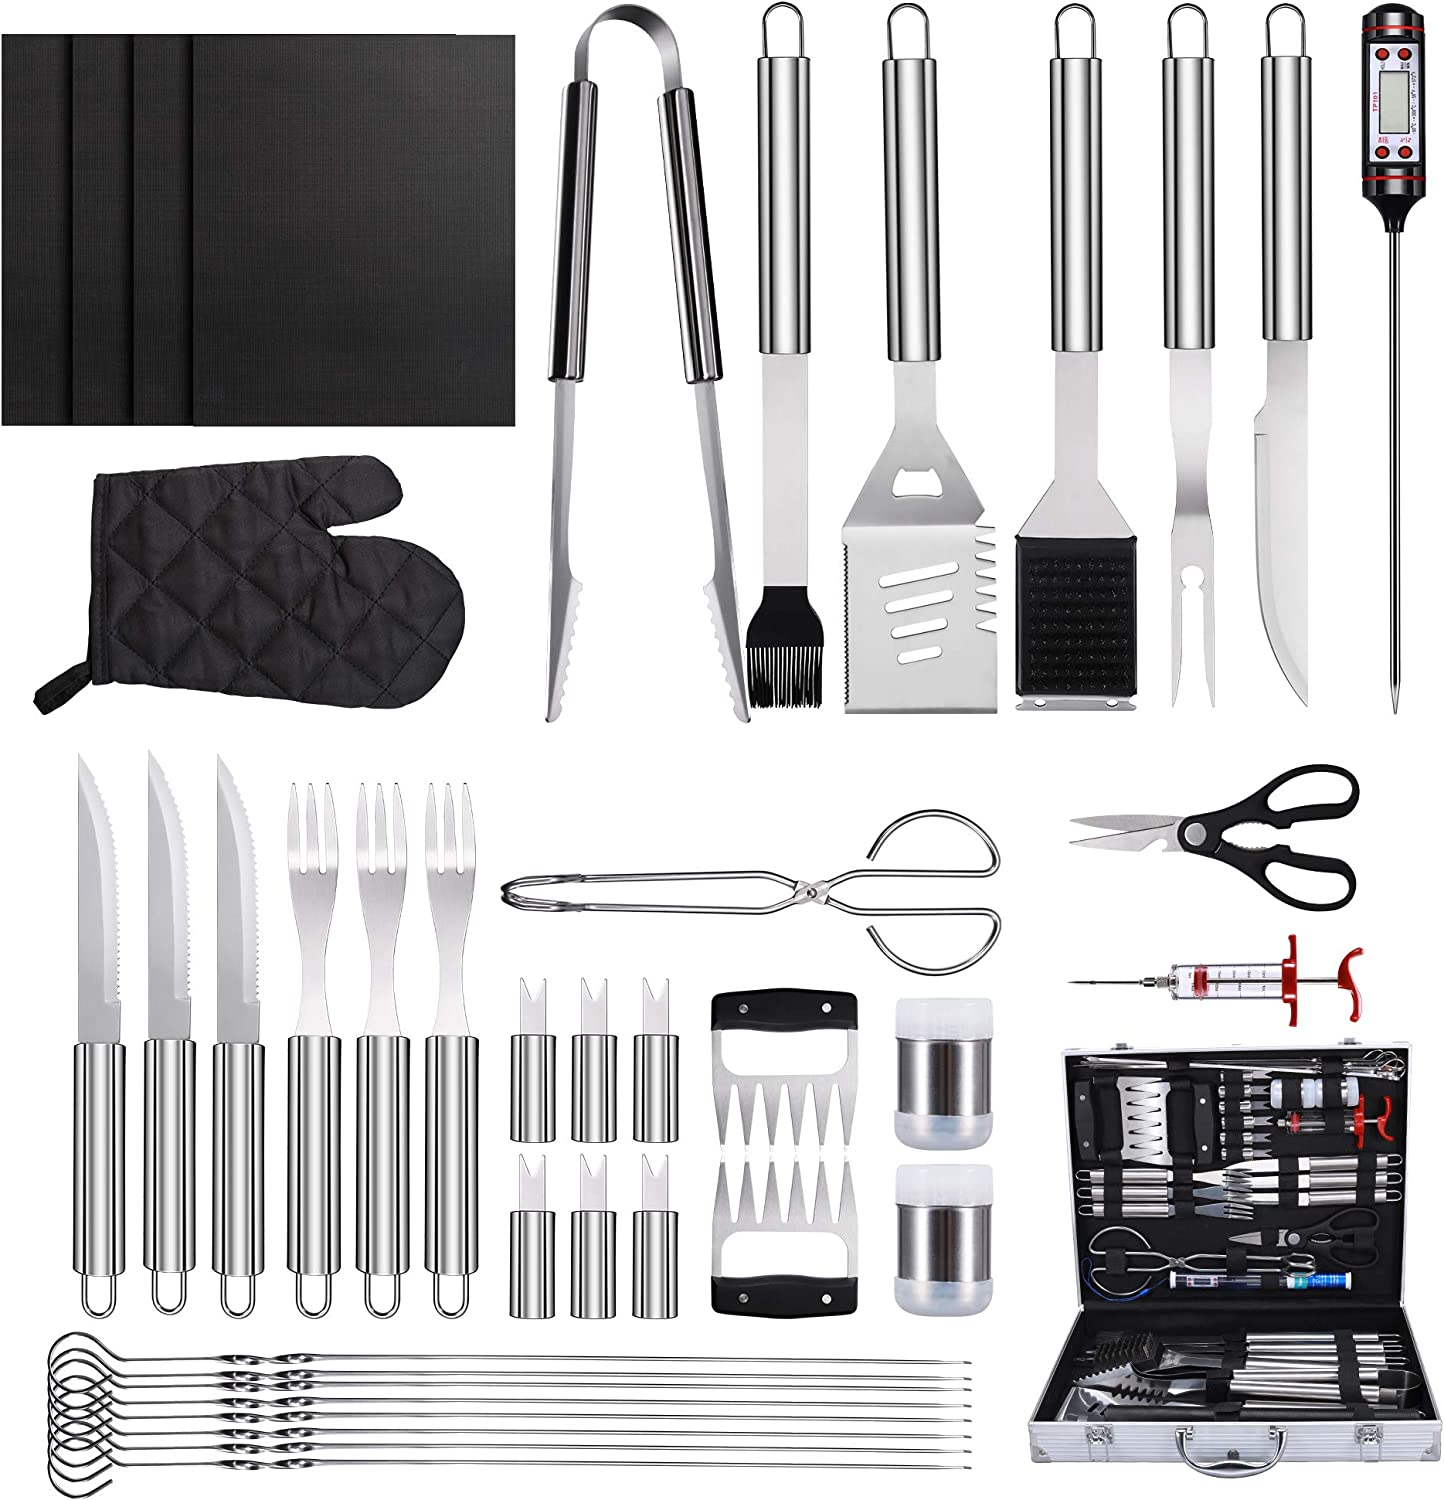 SYCEES 40 in 1 Grill Accessories Tool Set, Stainless Steel BBQ Grill Tools with Thermometer, Grill Mats for Camping/Backyard Barbecue, Grilling Tools Set for Men Women